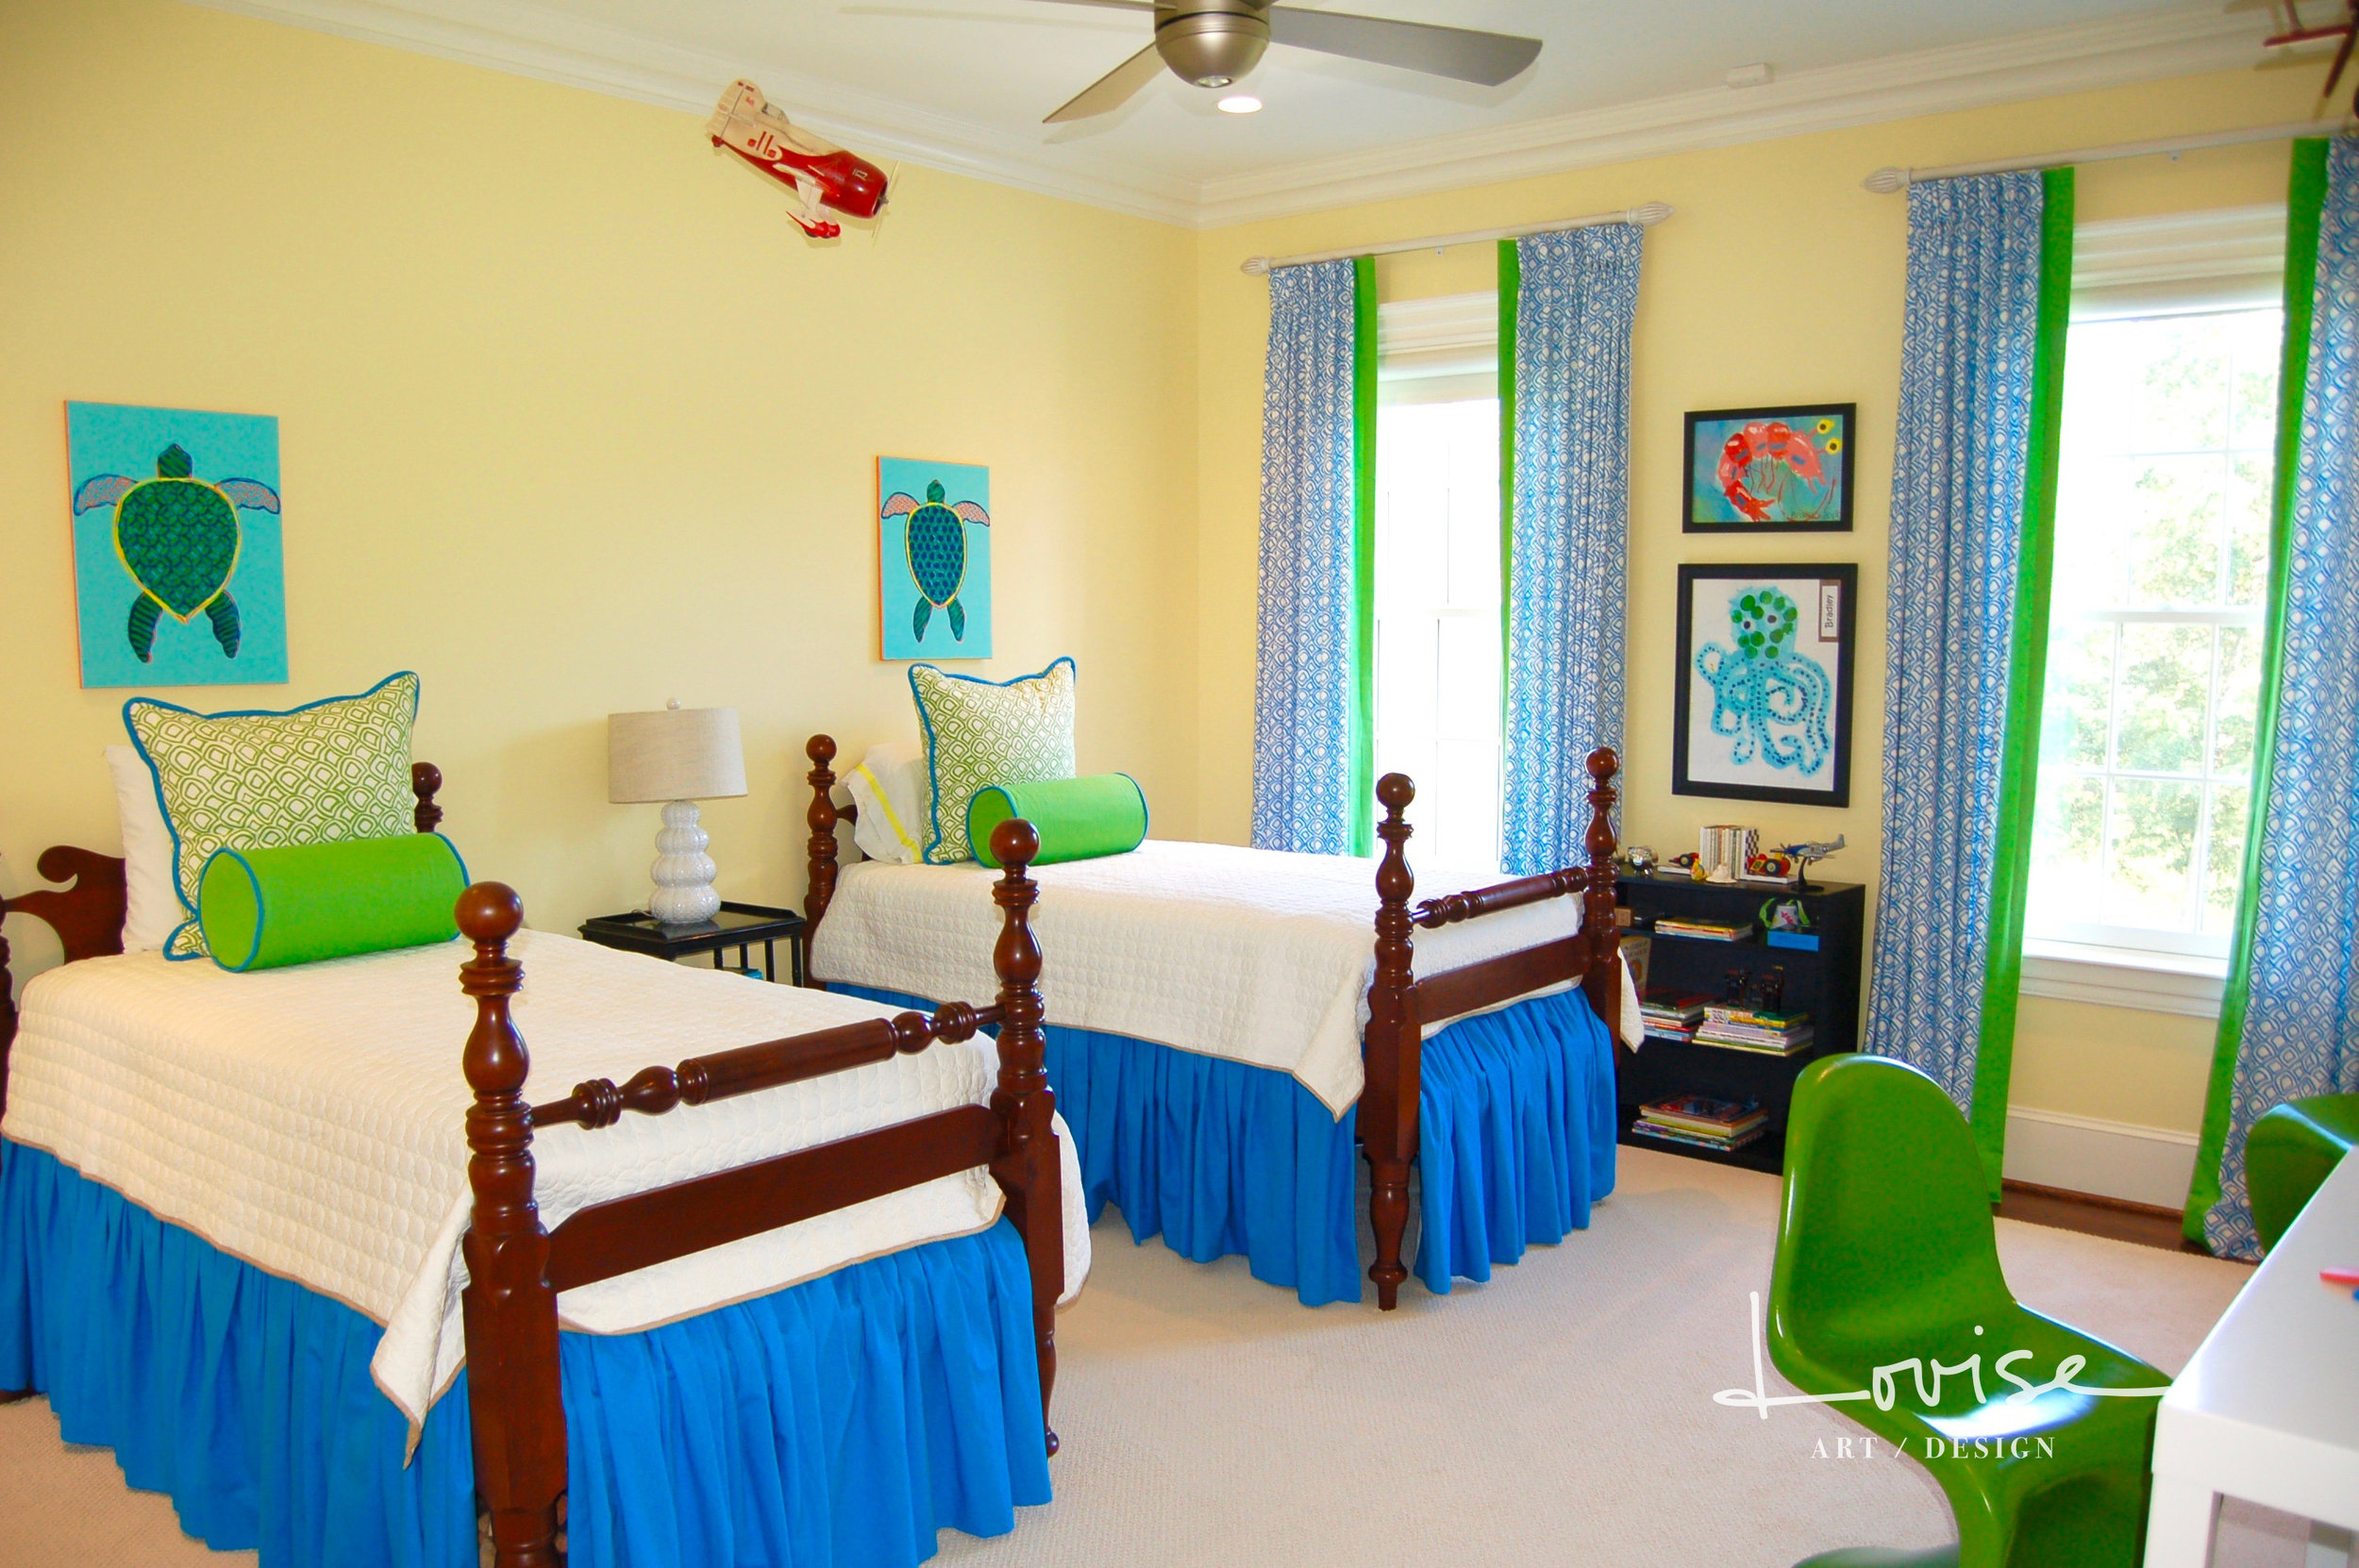 Childs bedroom with custom blue and green window treatments and bedding